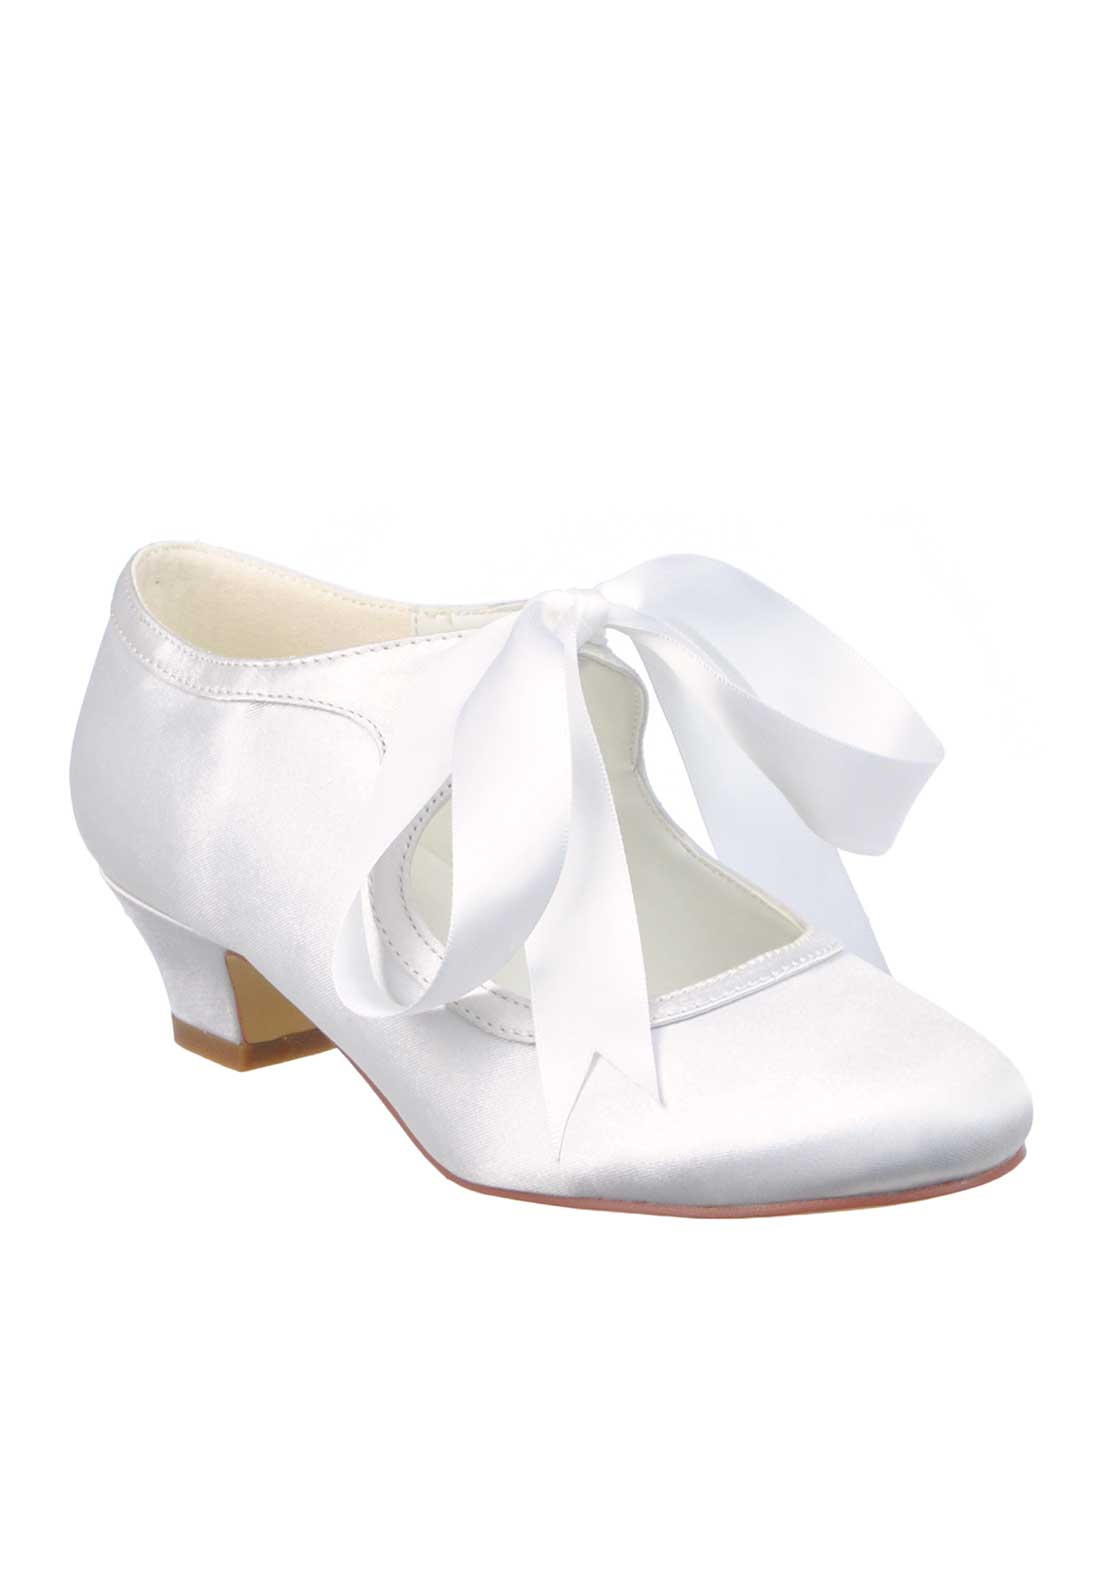 Little People Girls Bow Satin Communion Shoes, White